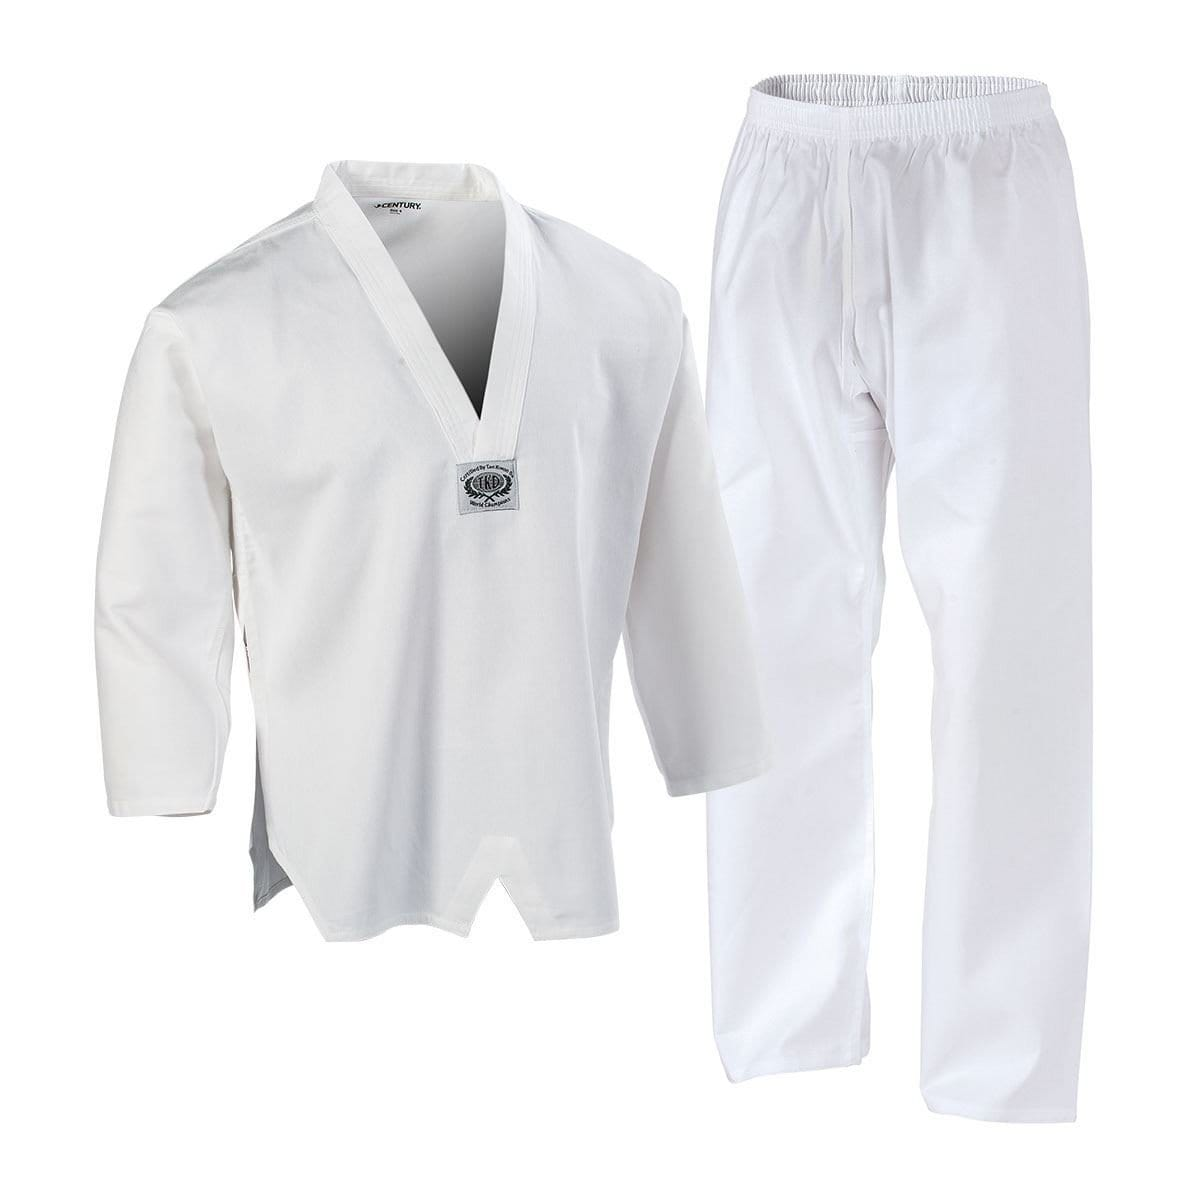 Century Lightweight TKD TaeKwonDo Uniform pink black or white c04206 - BlackBeltShop